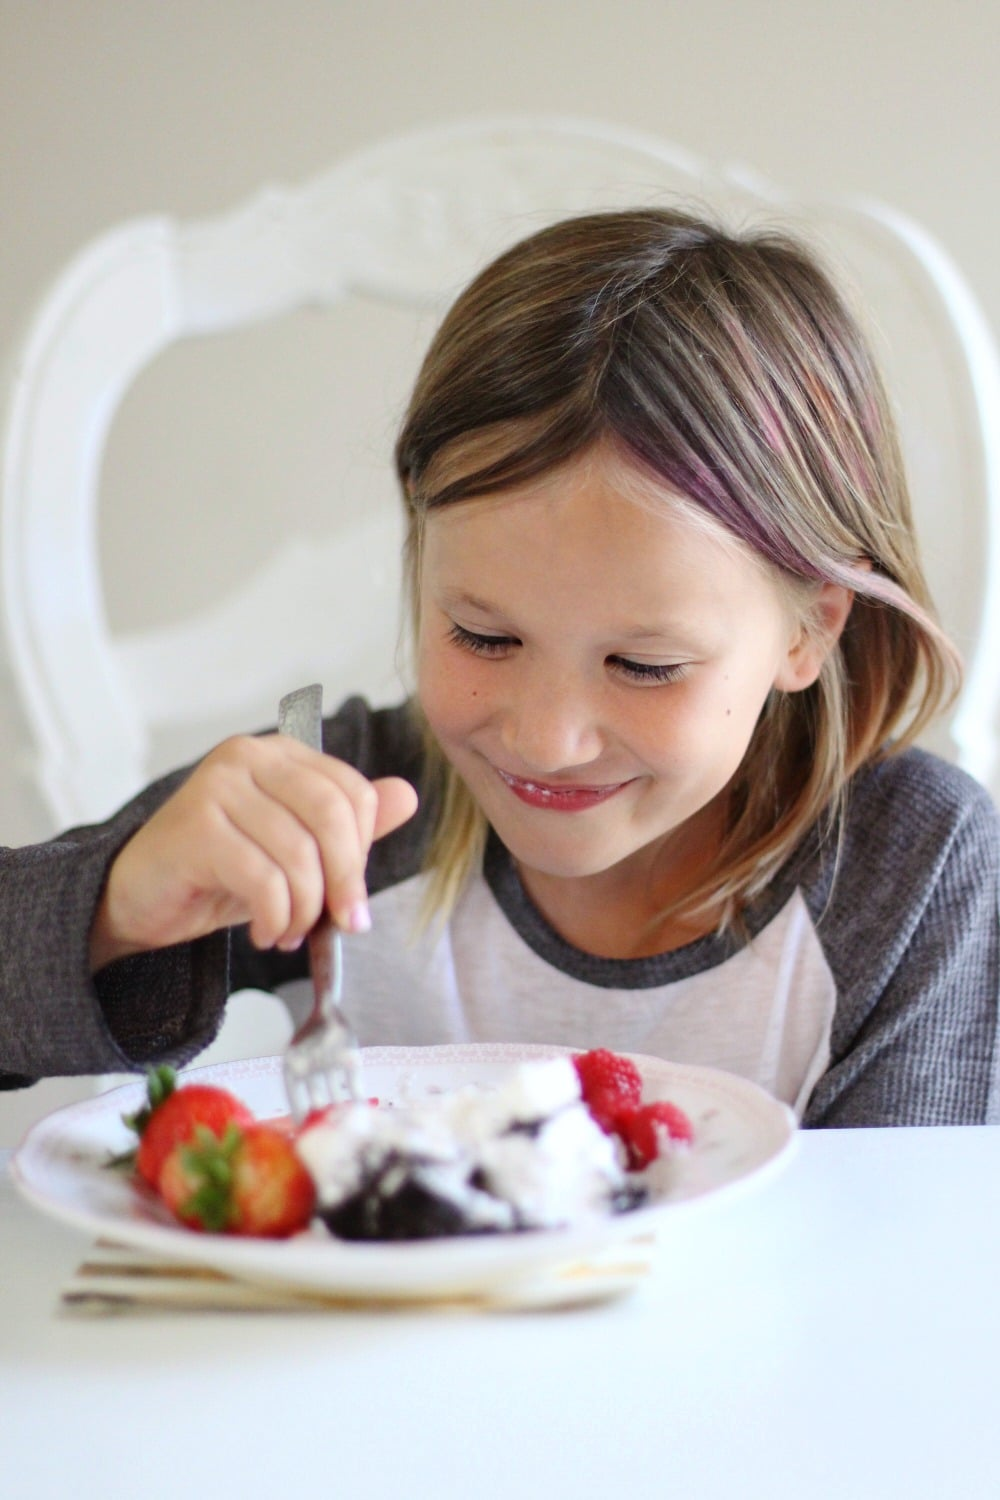 Berry OREO® Ice Cream Cake Recipe Enjoying the cake!